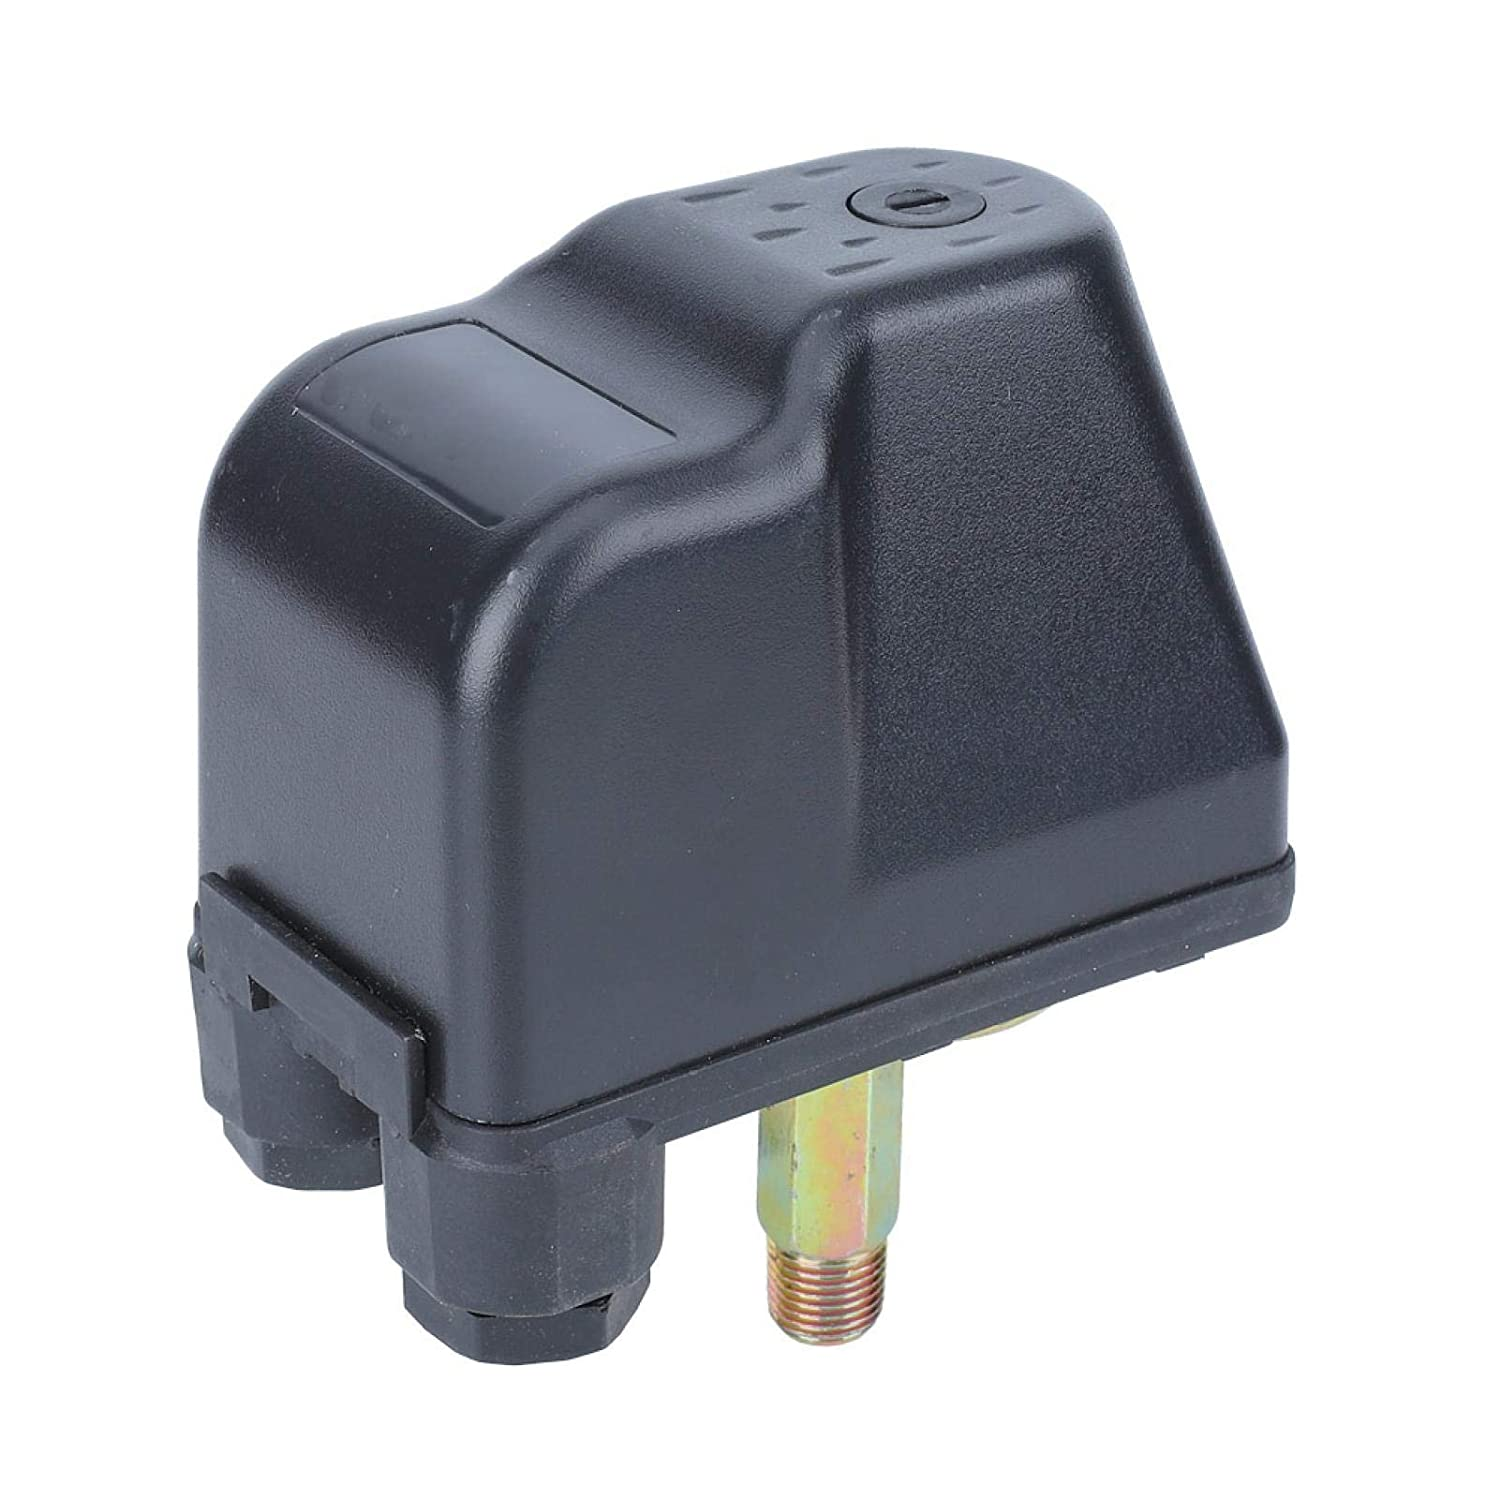 Jet Pumps Now free shipping Parallel Bars 70% OFF Outlet Double Pressure Switch Control Spring R